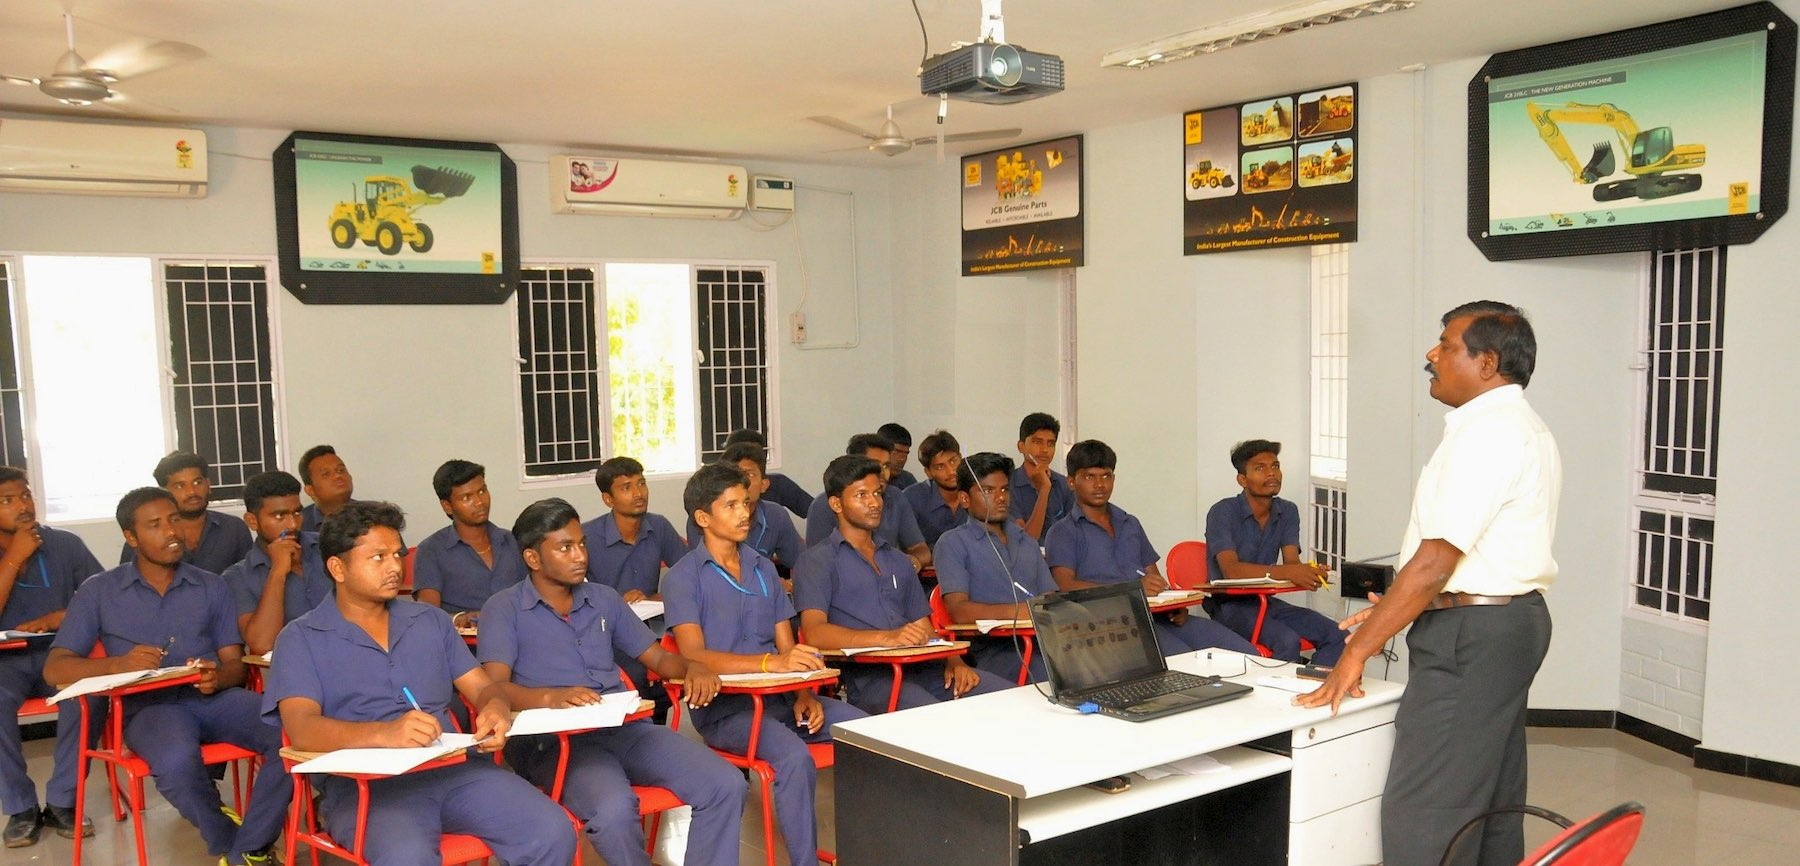 Jayaraj operator & technical training center